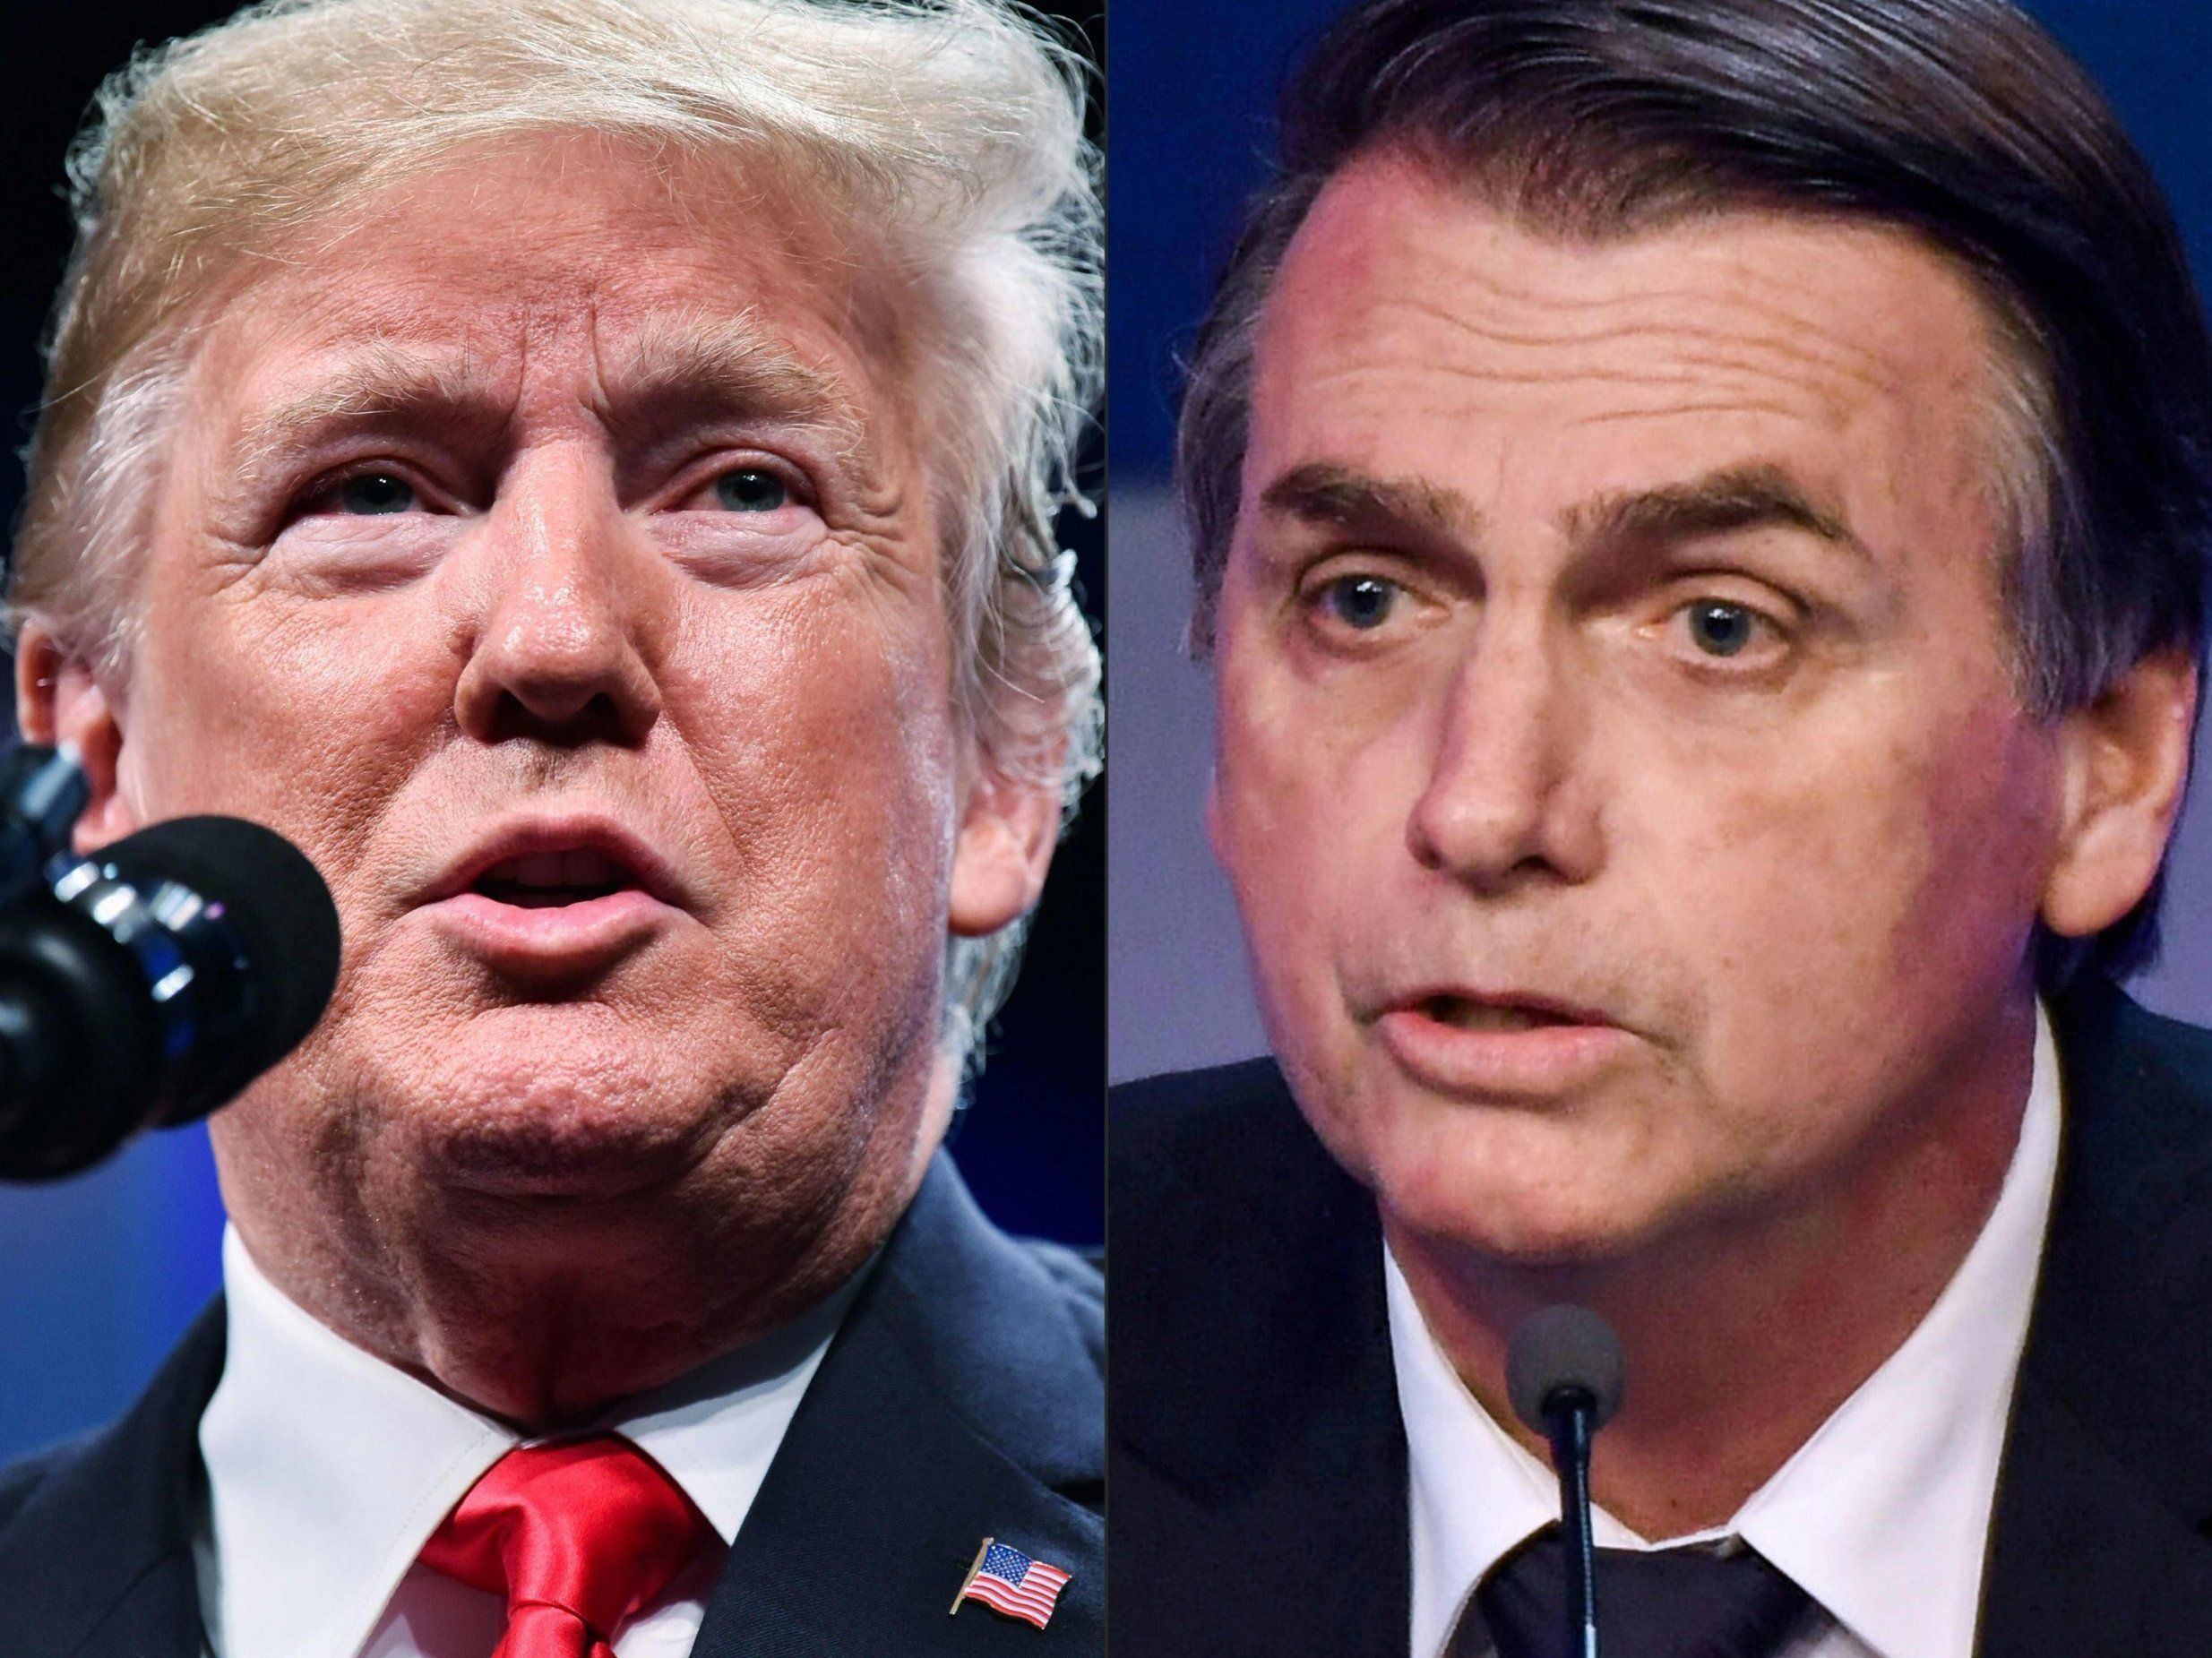 Bolsonaro modeled his rise to power on Donald Trump's. Now, right-wing politicians across Latin America will likely take less